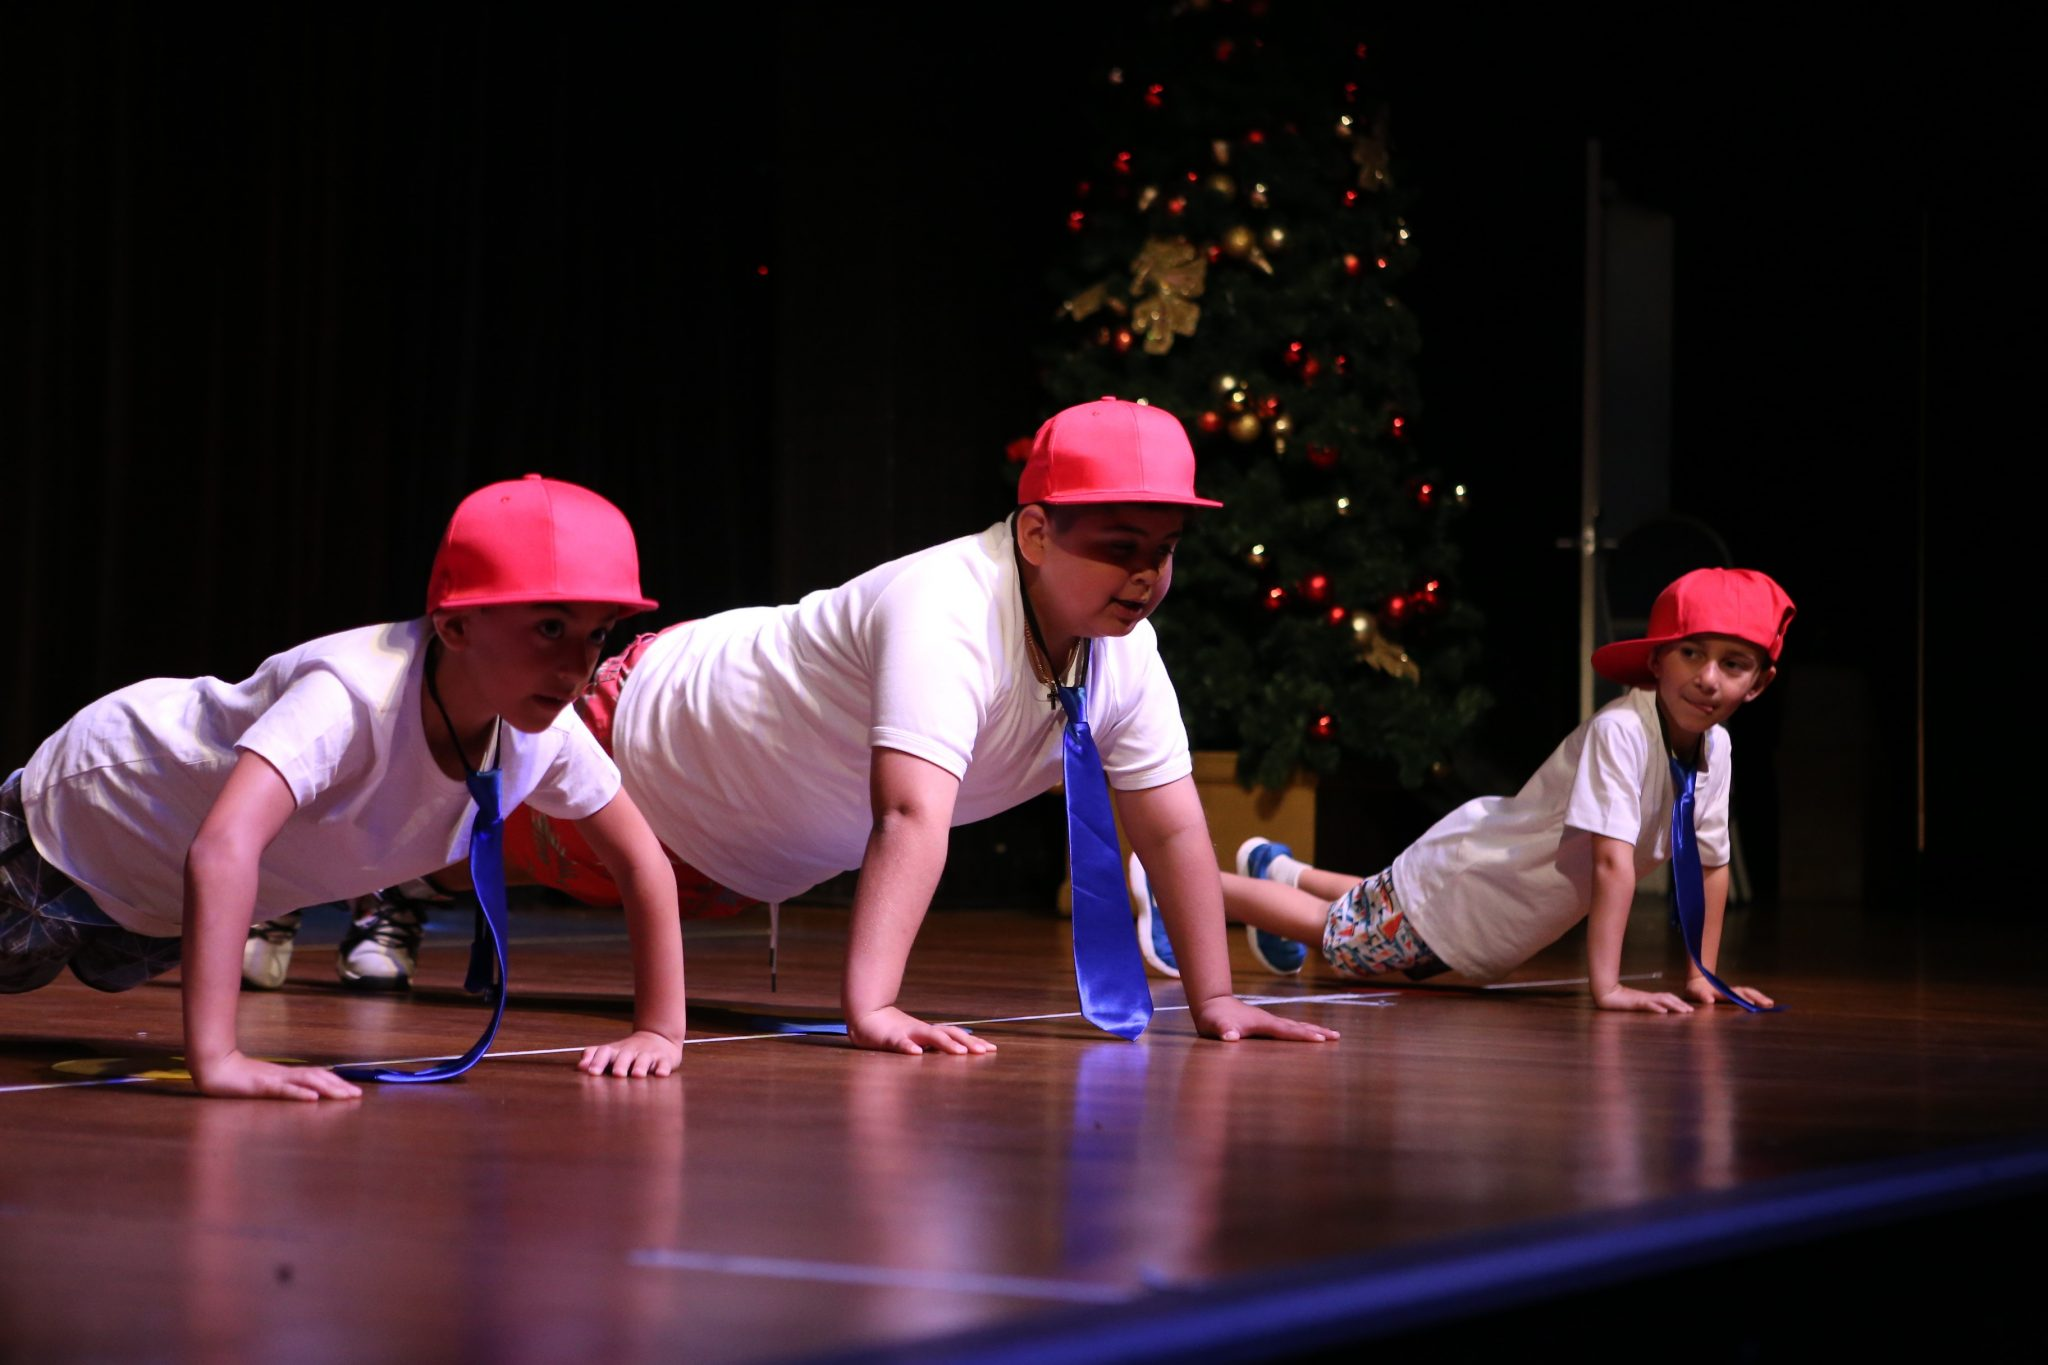 Pre-teen boys performing Hip Hop at dance concert